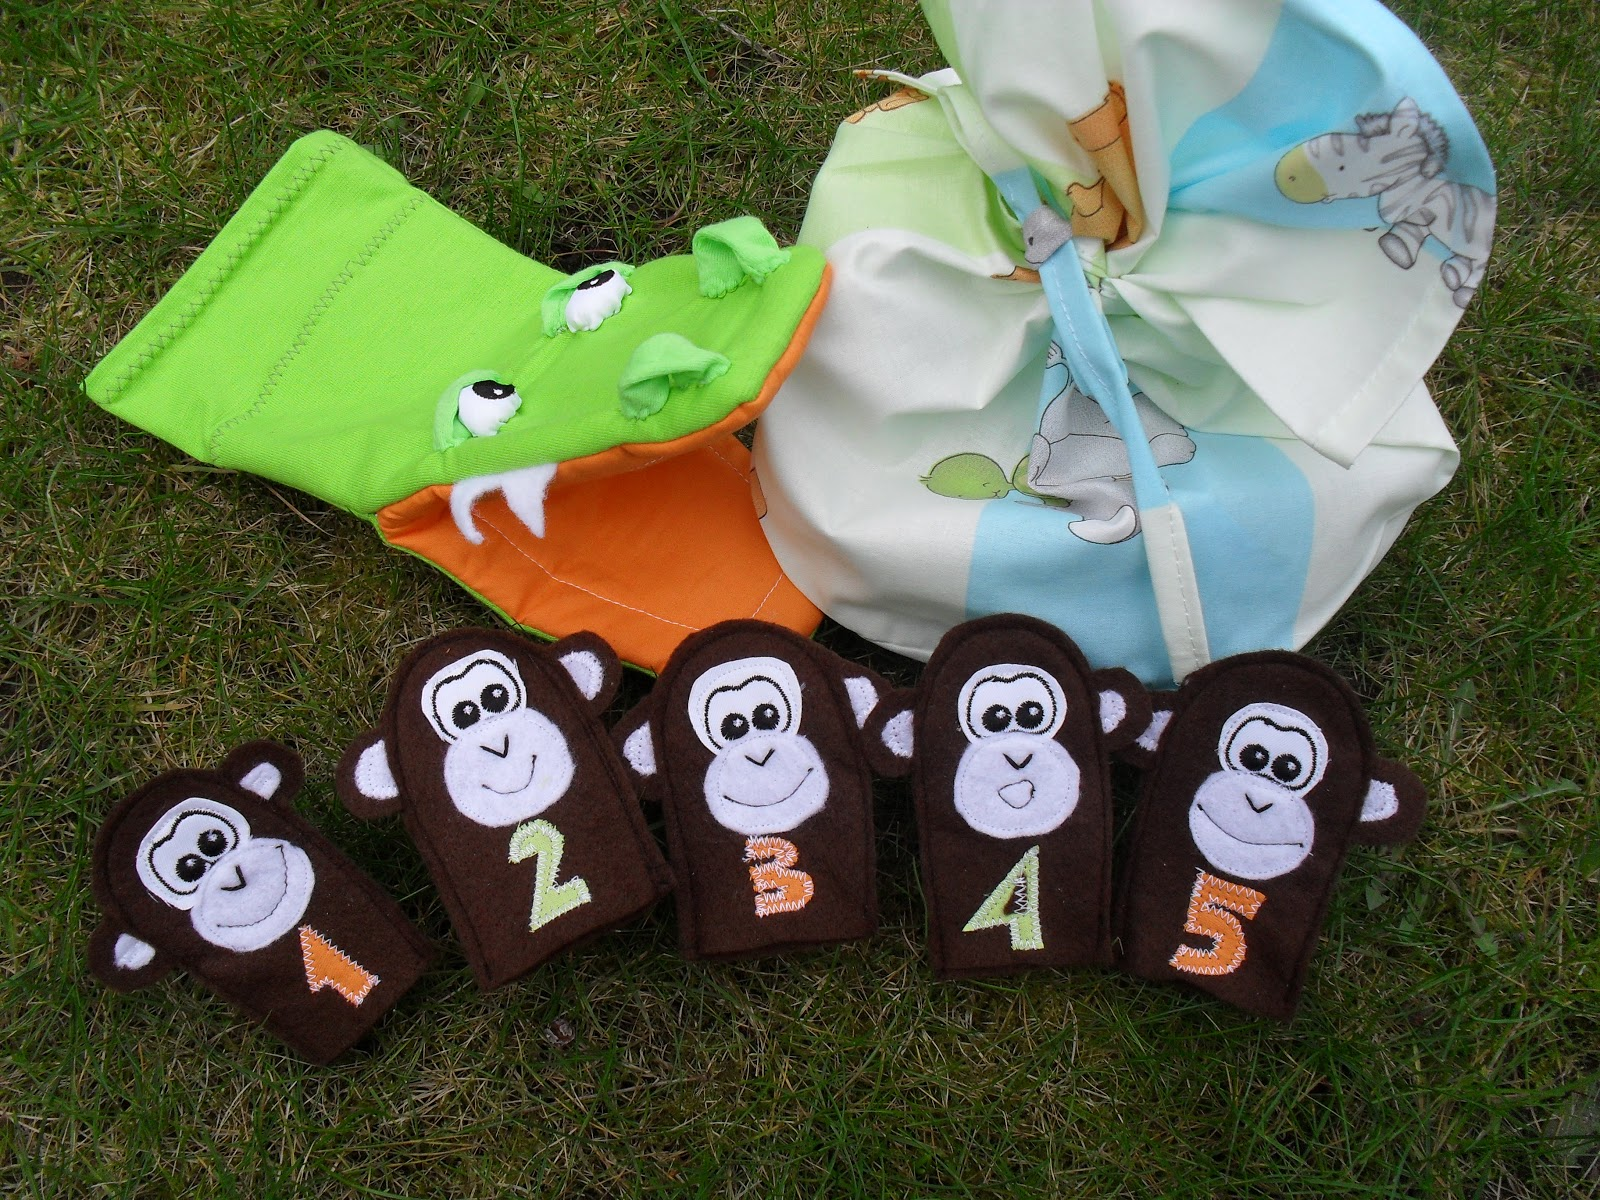 Custom Golf Headcovers And Puppets Five Little Monkeys